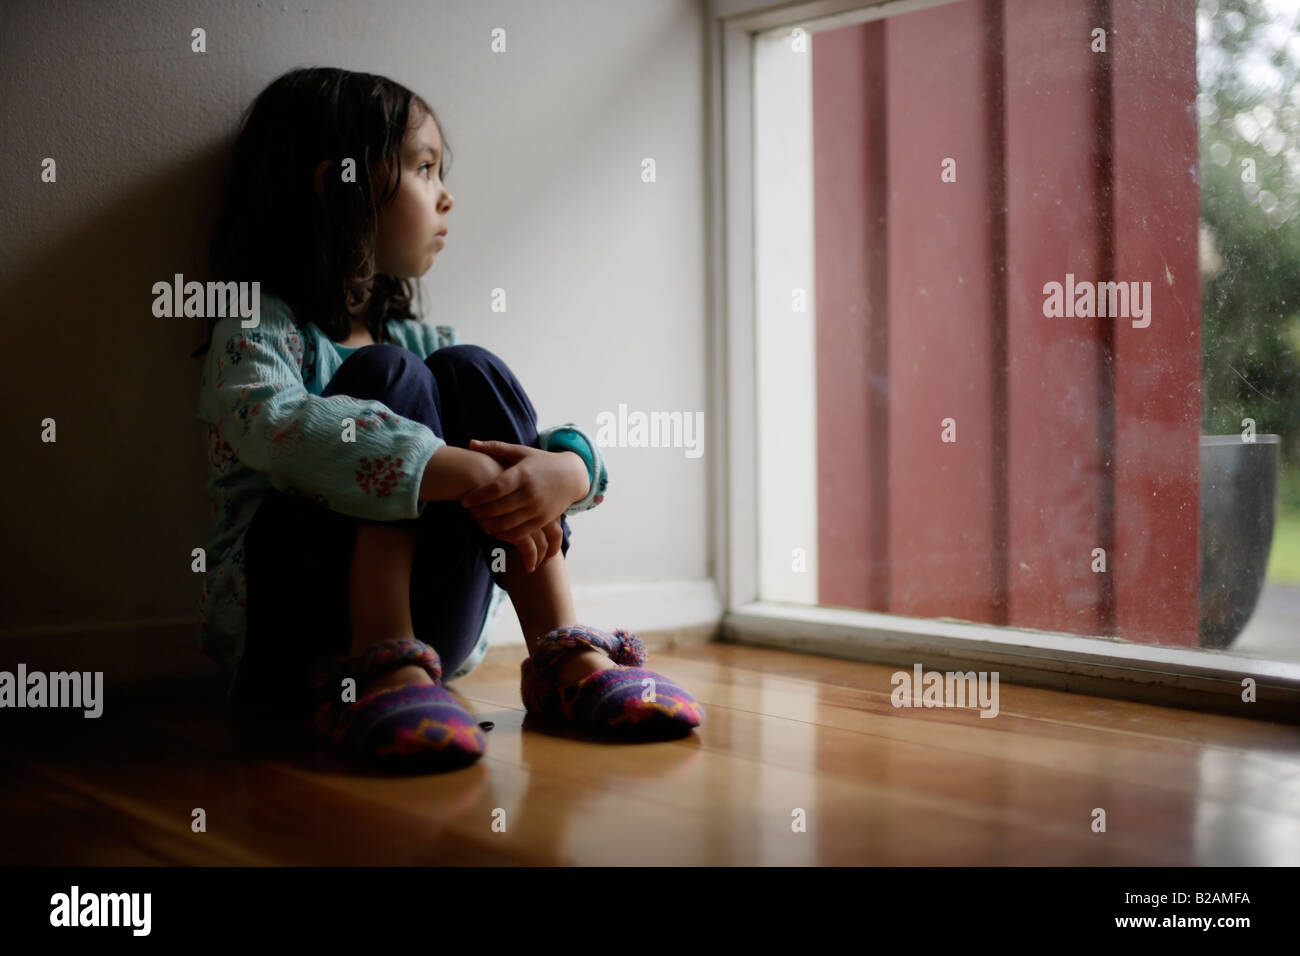 Portrait of little girl aged five sat on floor beside window Mixed race indian ethnic and caucasian - Stock Image